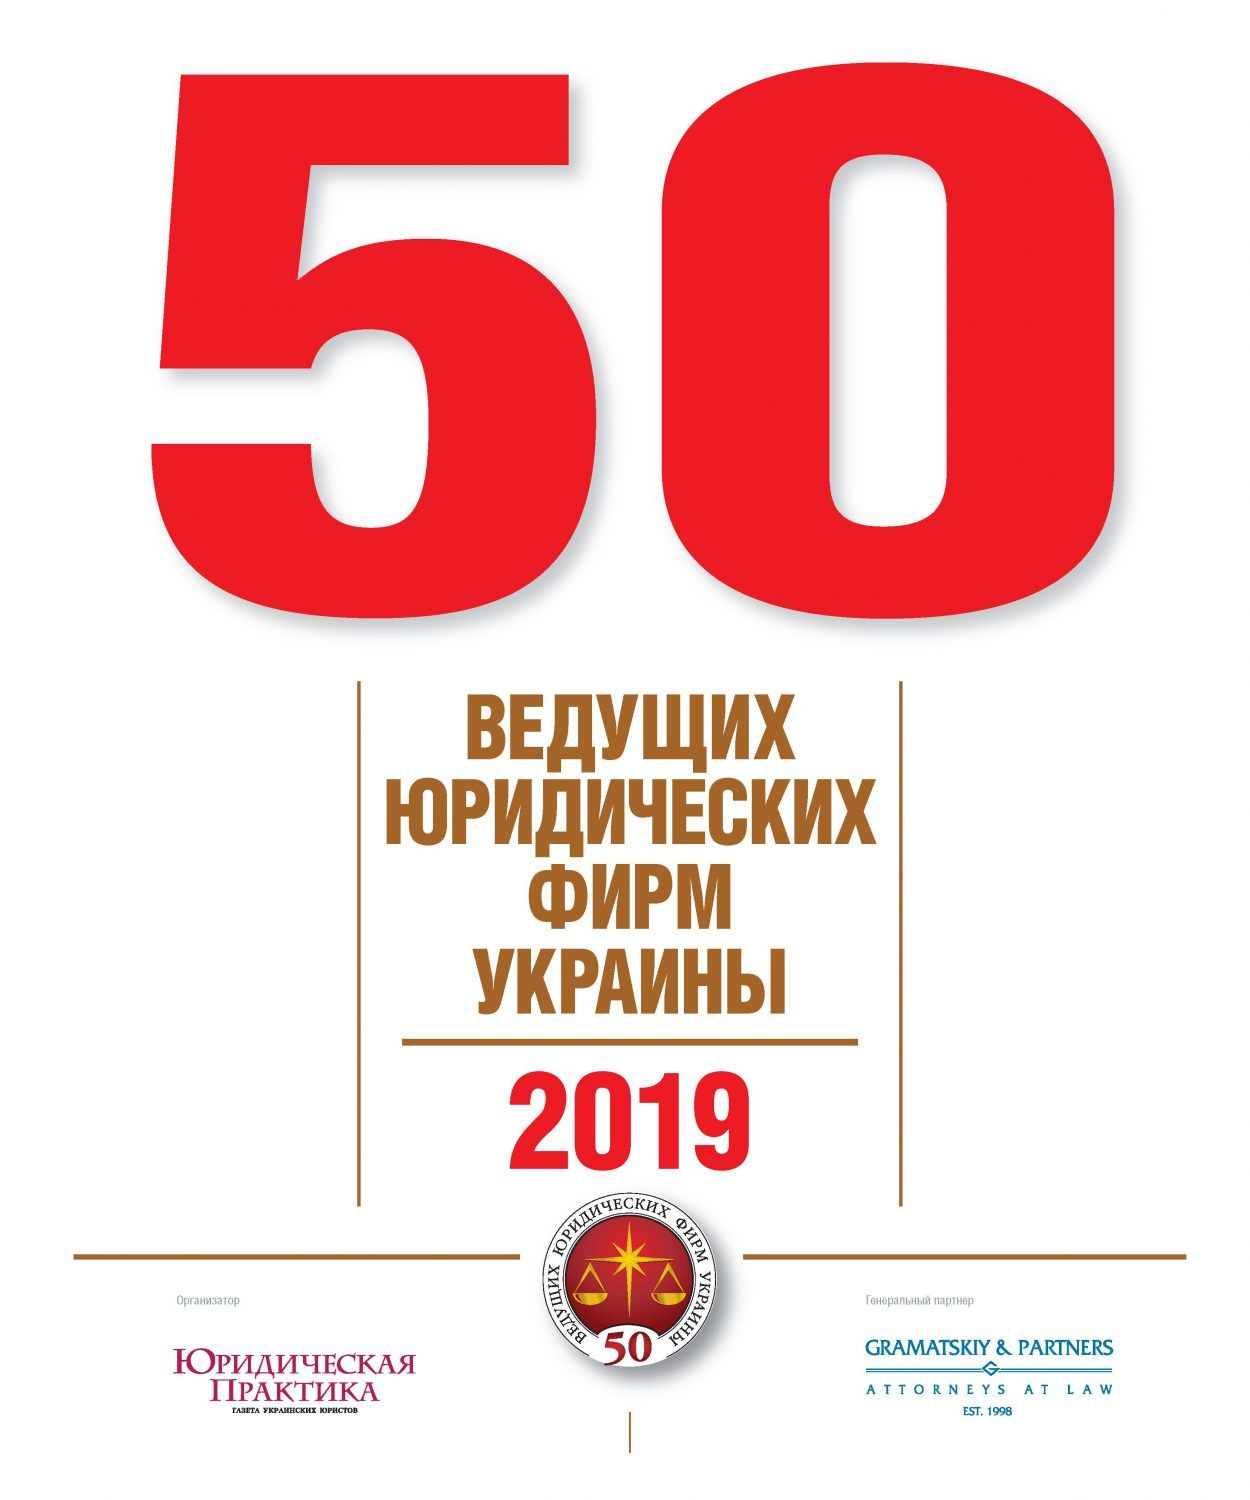 Jurline is counted among the TOP-50 leading law firms in Ukraine